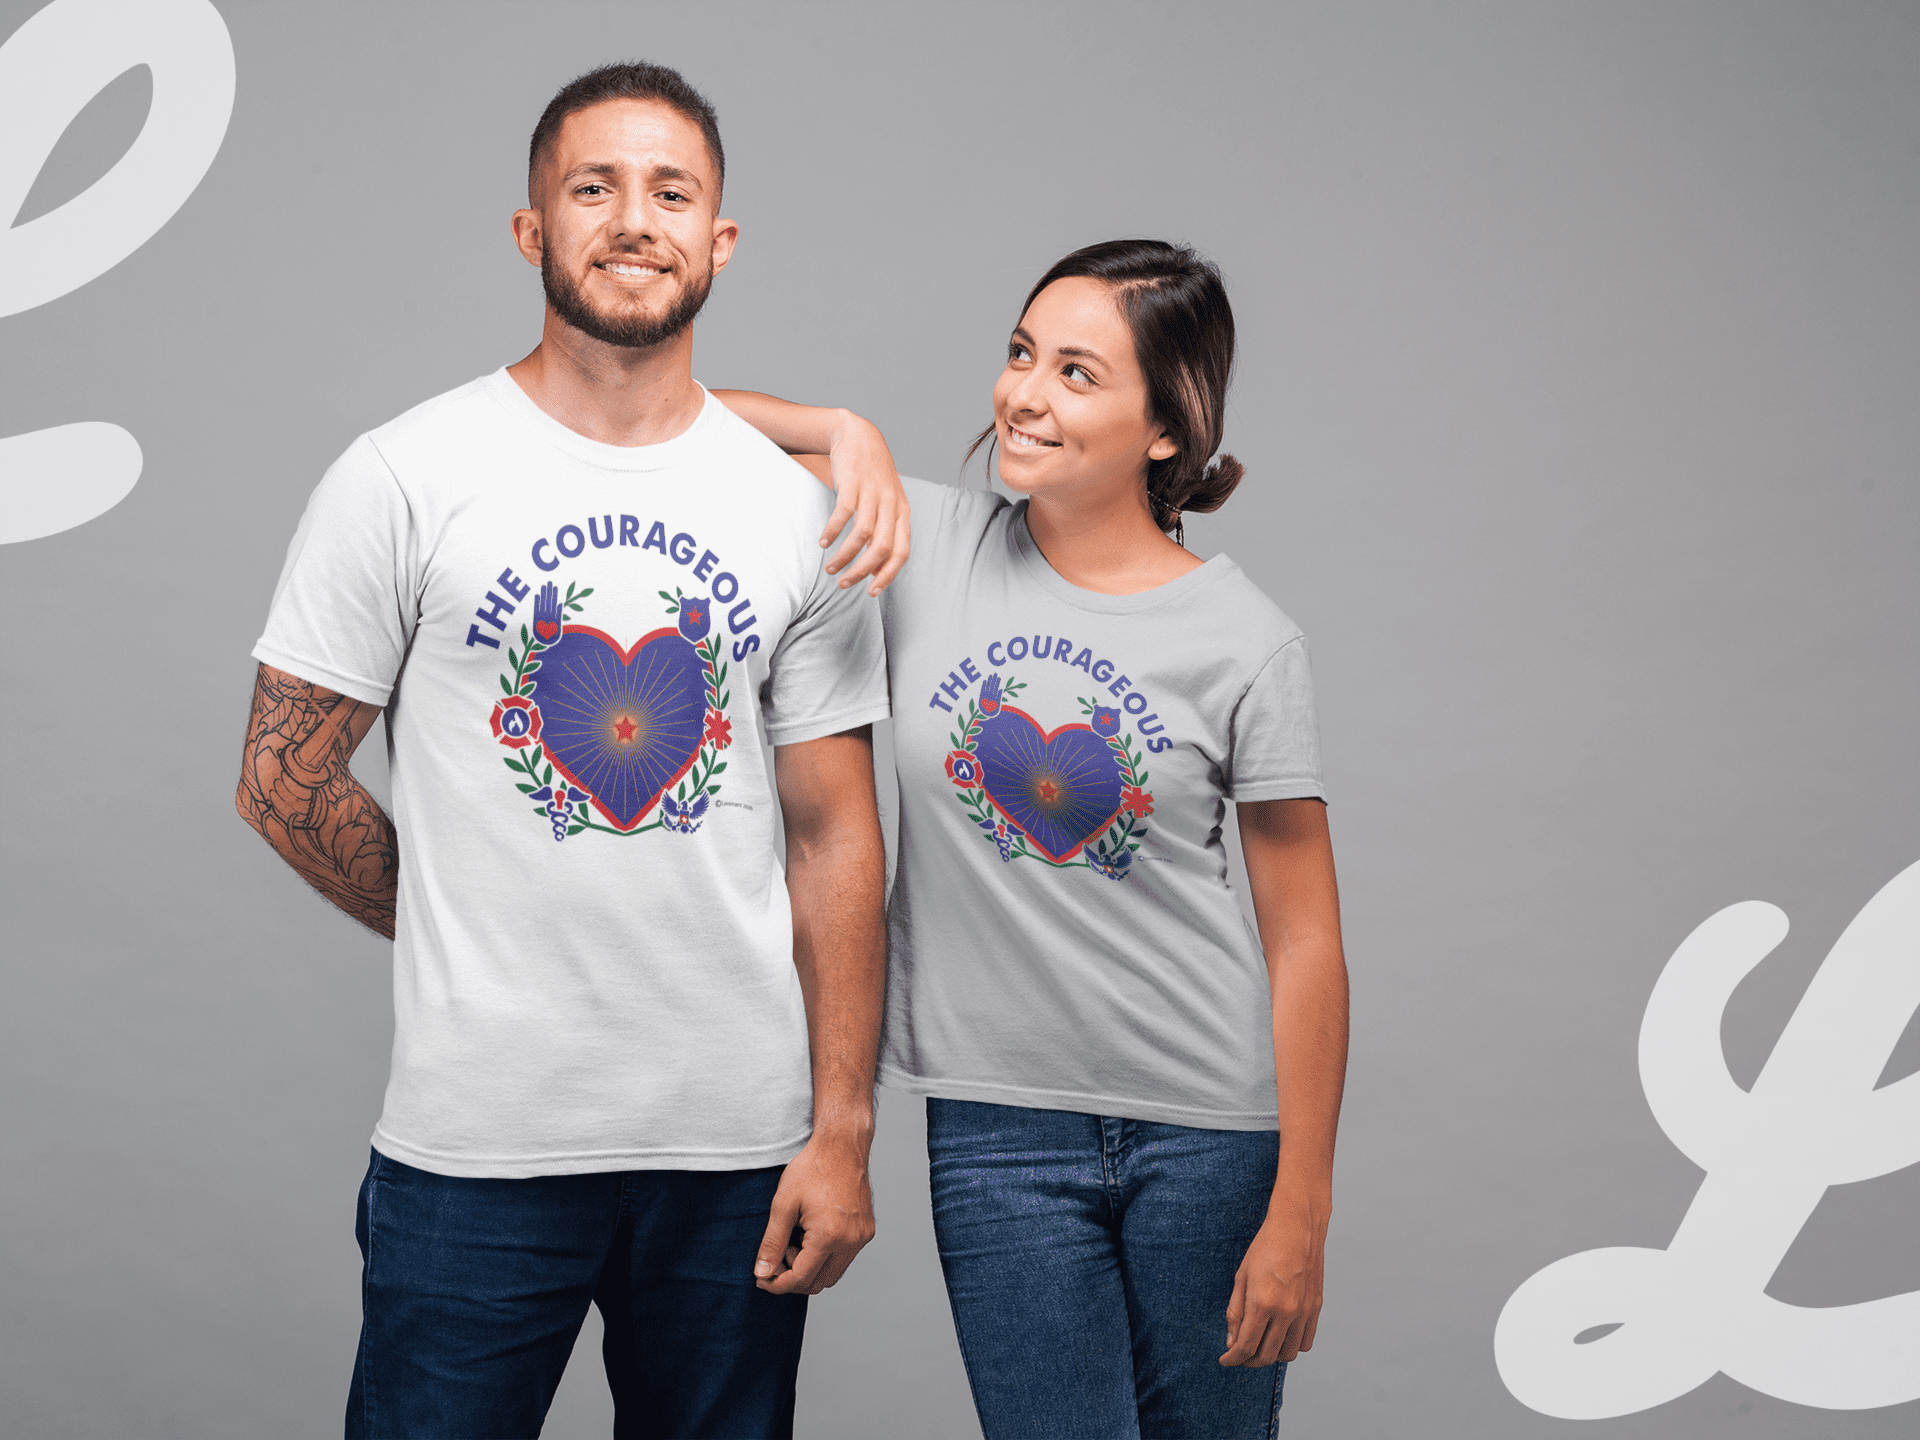 courageous covid hero tshirts for frontline workers in NY